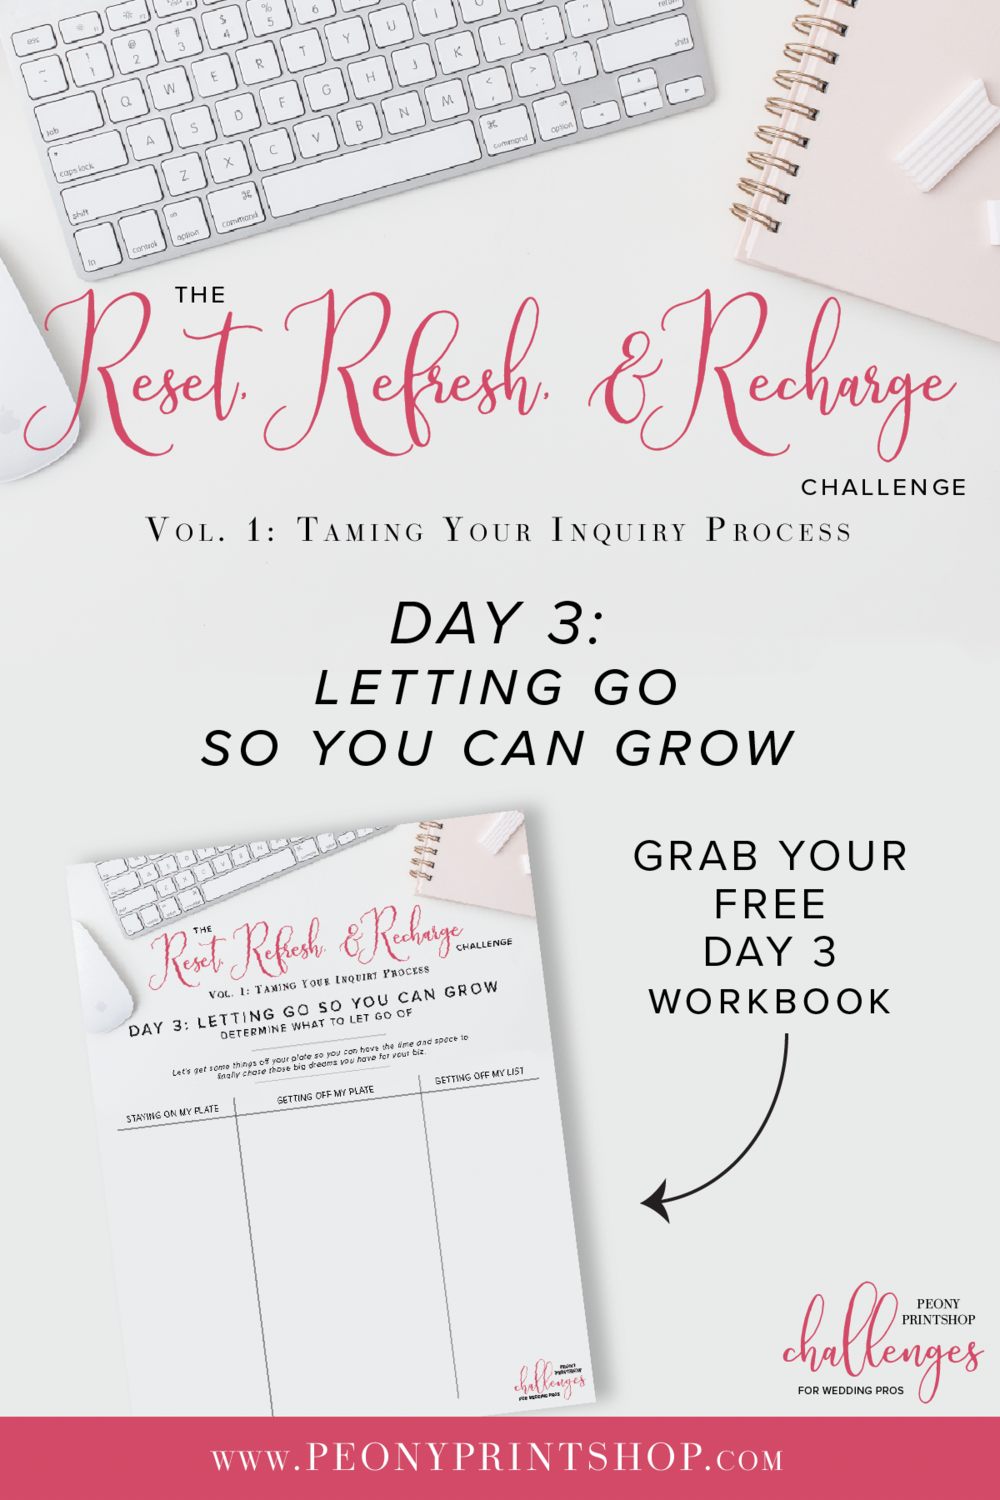 Reset, Refresh, and Recharge 5-Day Challenge on PeonyPrintshop.com | Vol. 1 - Taming Your Inquiry Process | Grab your FREE Workbook on the blog.